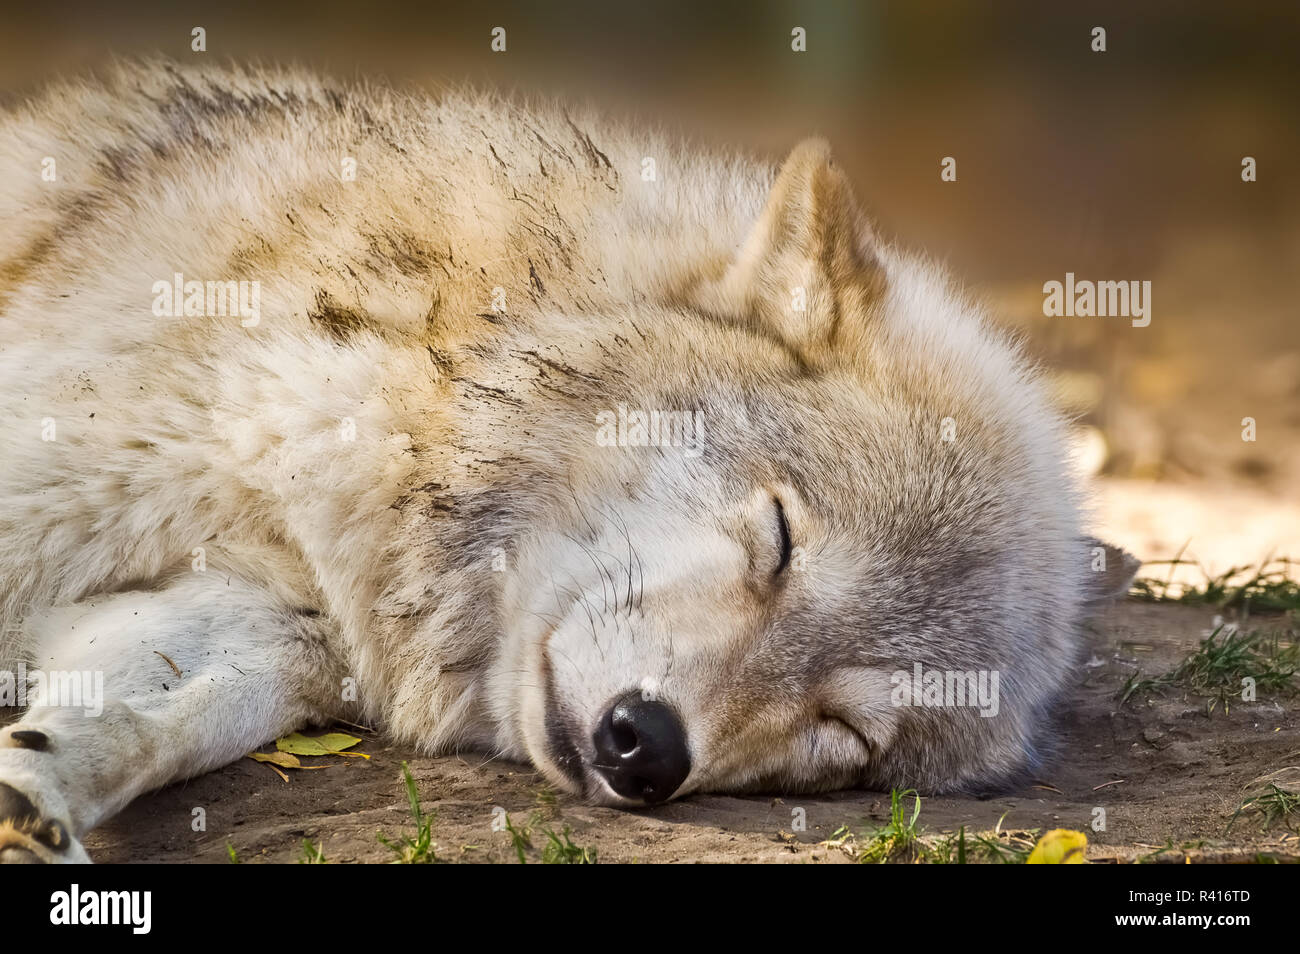 Couchage de Loup gris Photo Stock